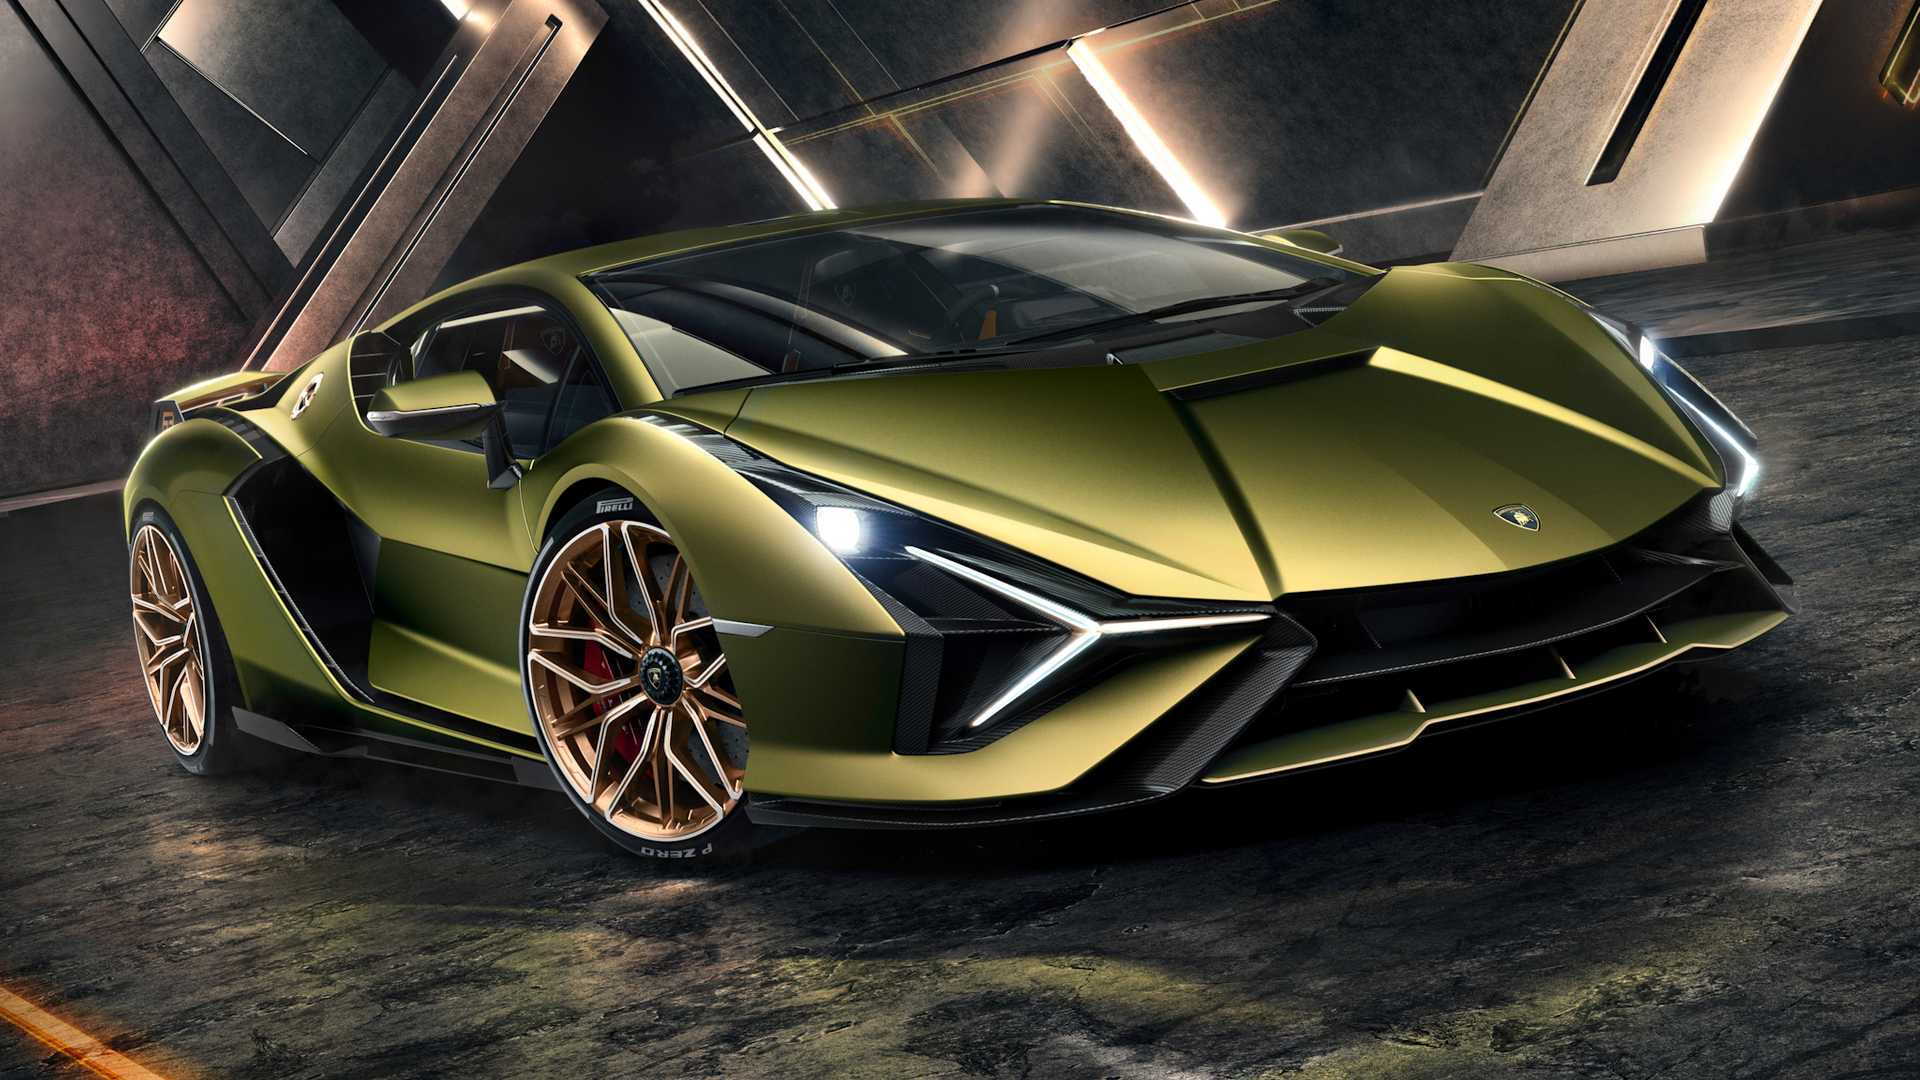 Lamborghini To Prioritize Handling Over Acceleration And Top Speed